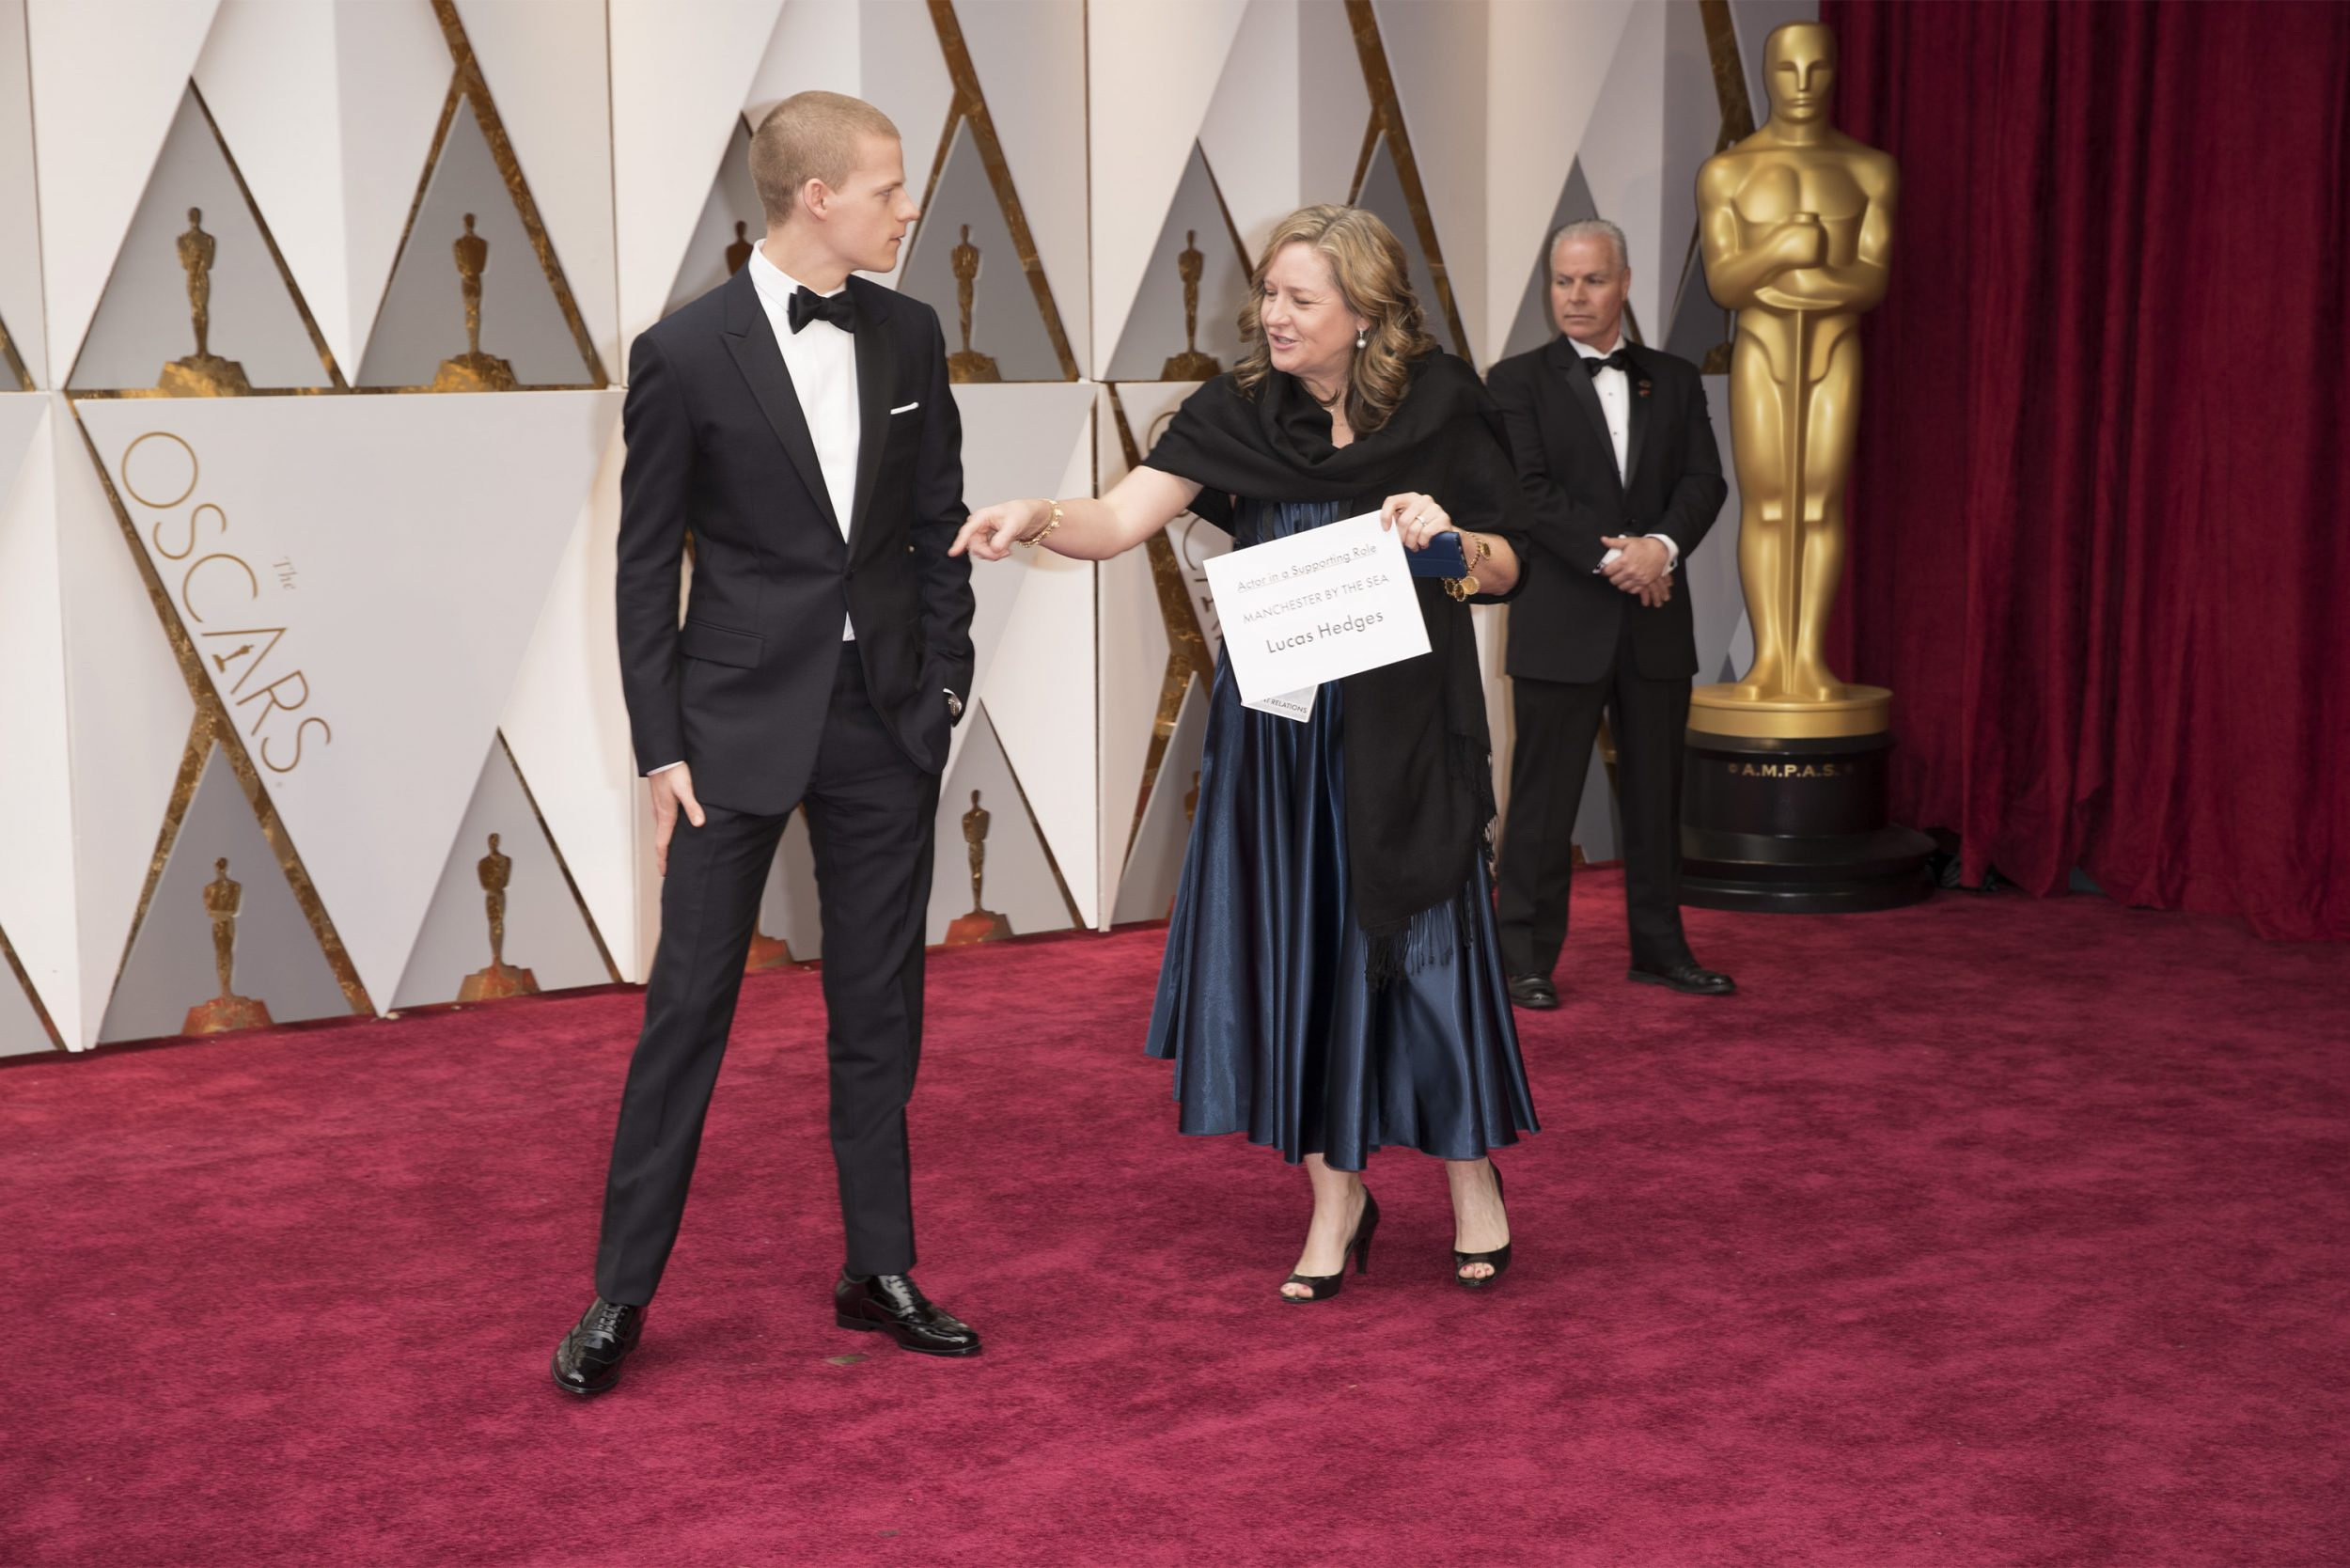 THE OSCARS(r) - The 89th Oscars(r)  broadcasts live on Oscar(r) SUNDAY, FEBRUARY 26, 2017, on the ABC Television Network. (ABC/Tyler Golden) LUCAS HEDGES